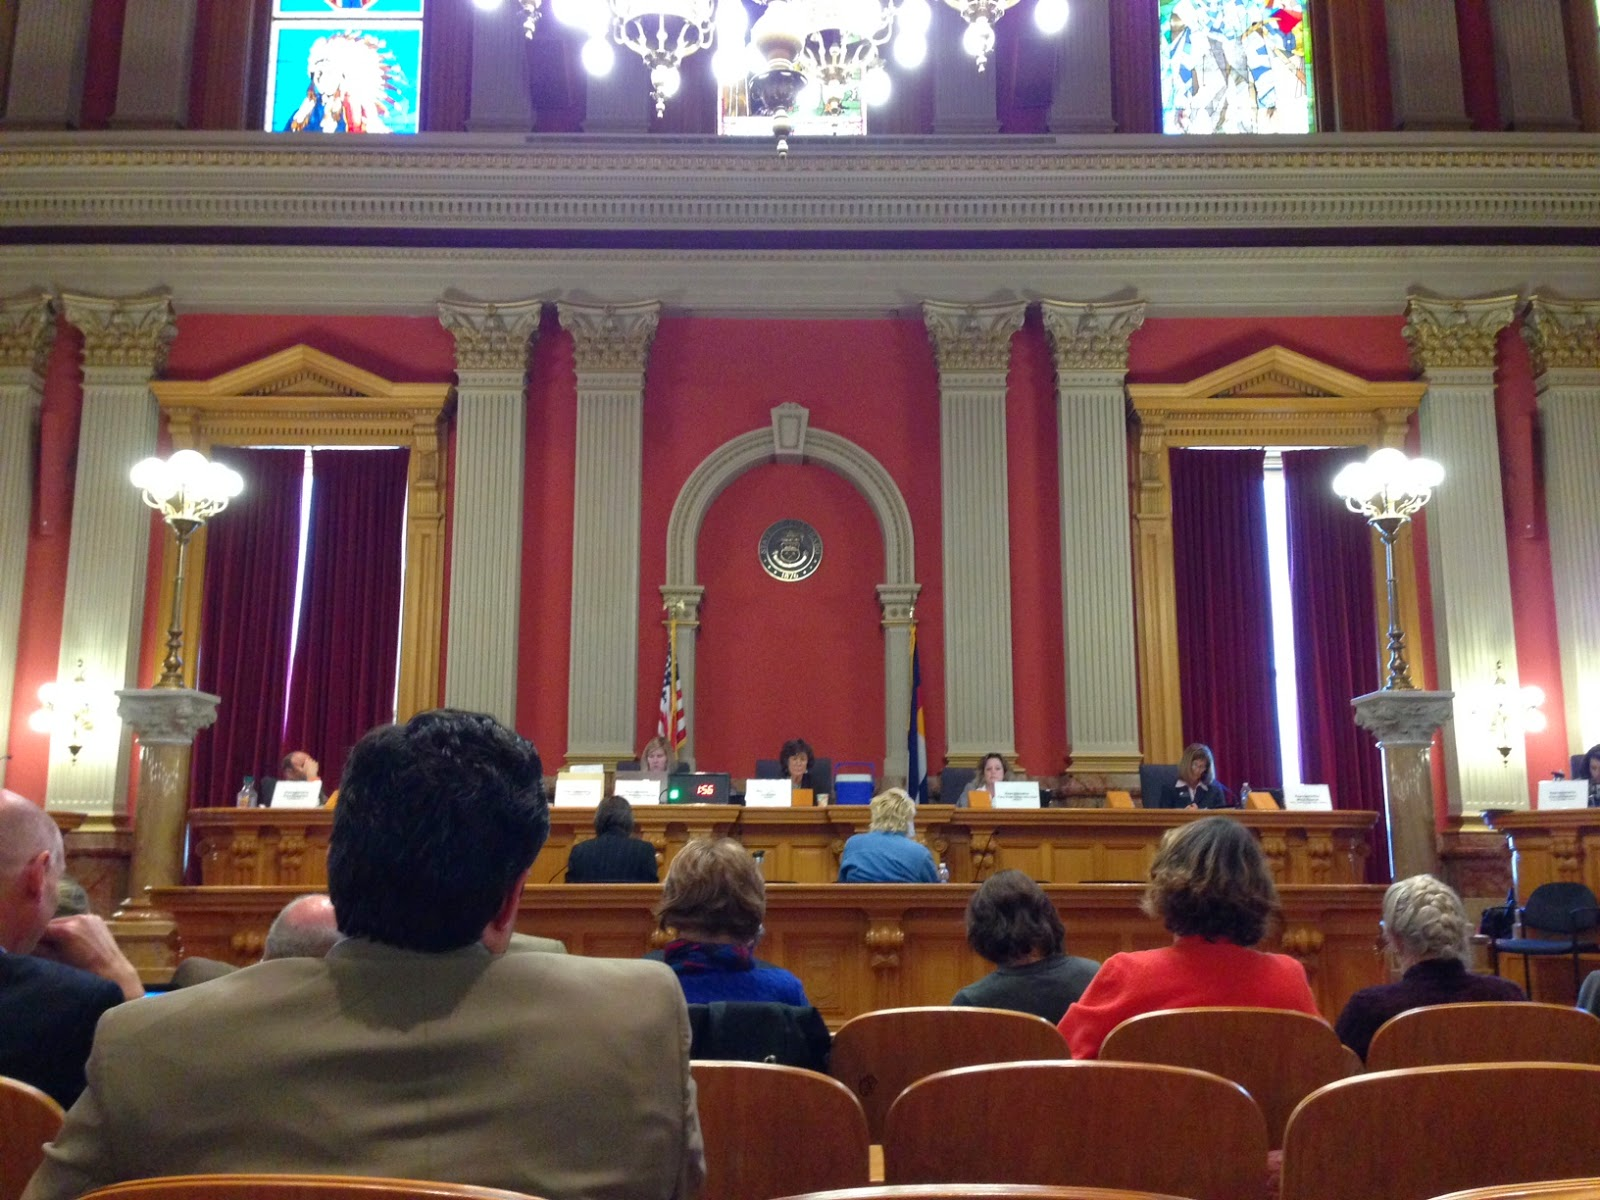 The old Supreme Court room, which is where the committee hearing on the telecommunication bills was held.